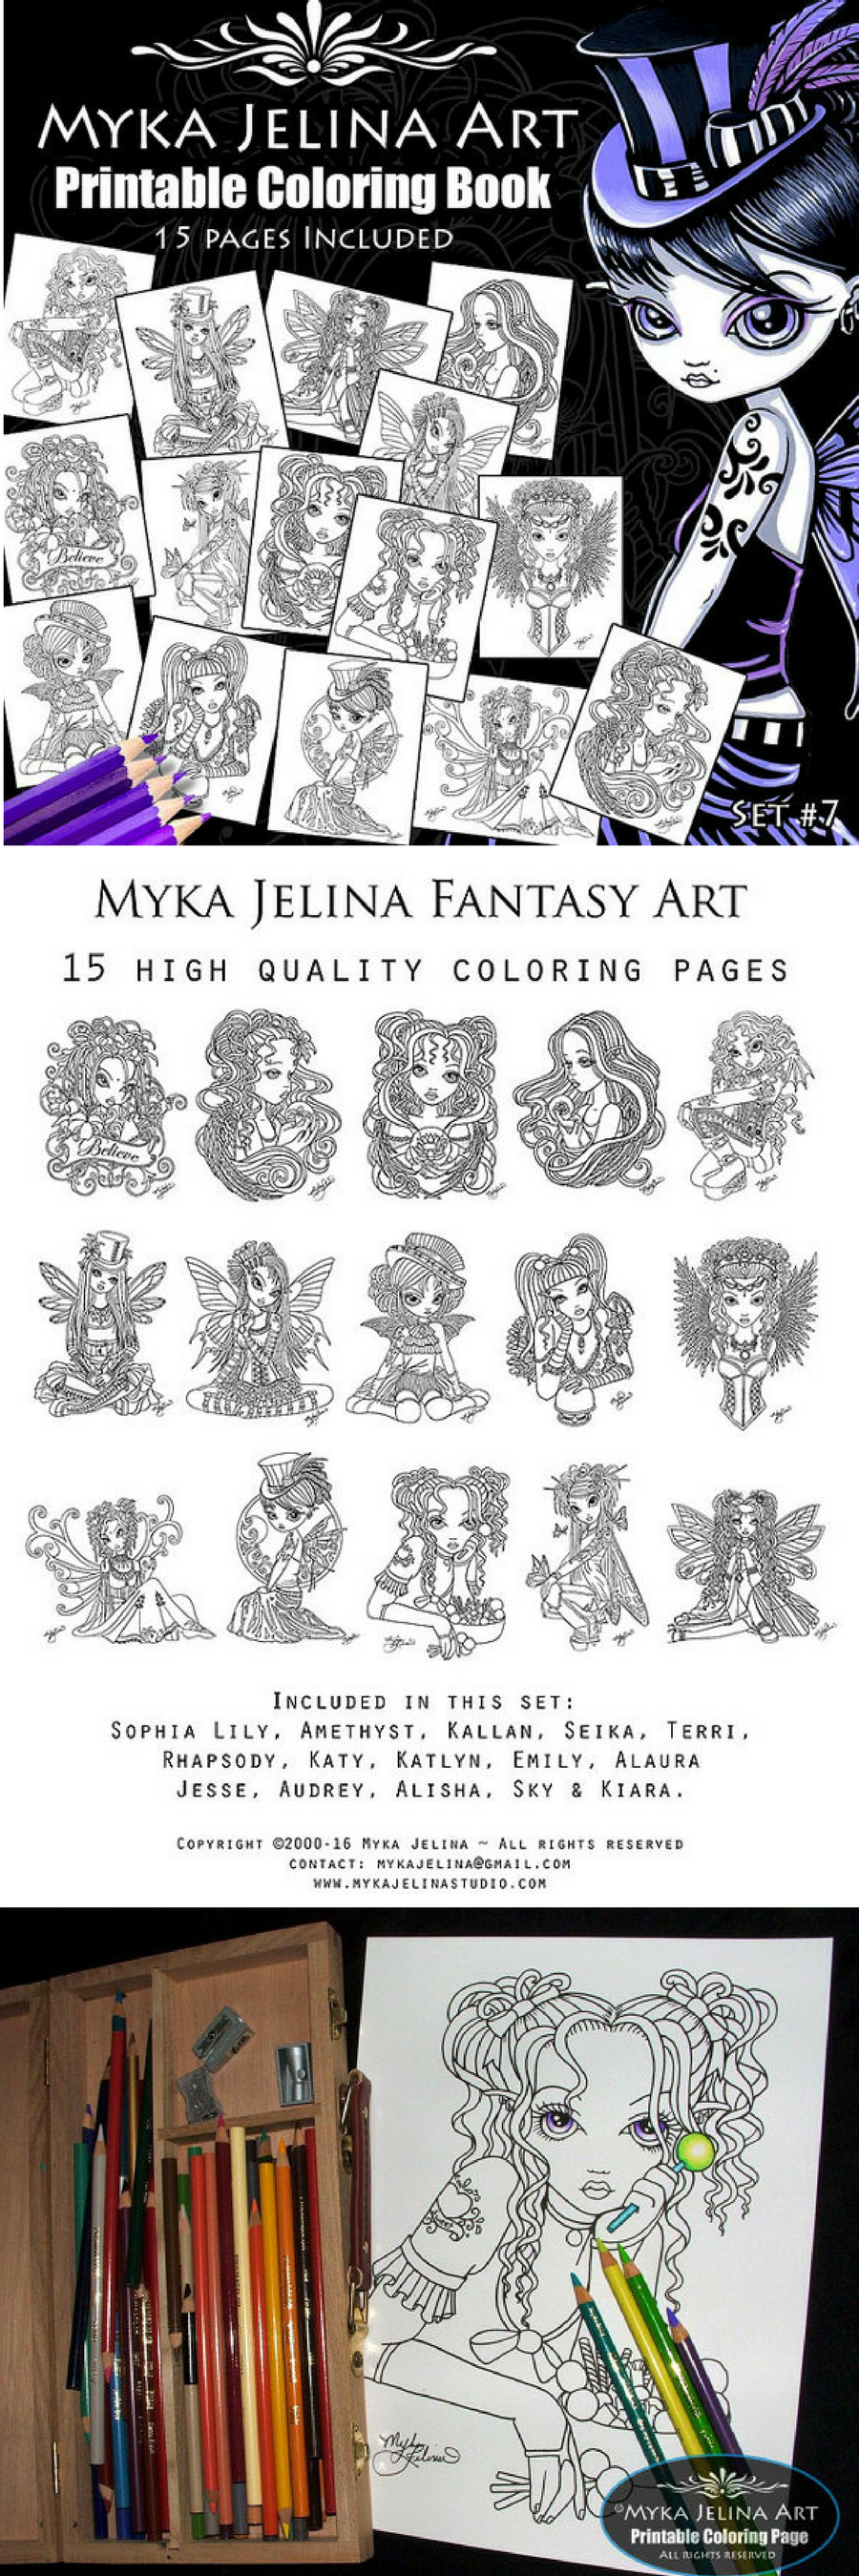 Printable adult coloring book set pages myka jelina art